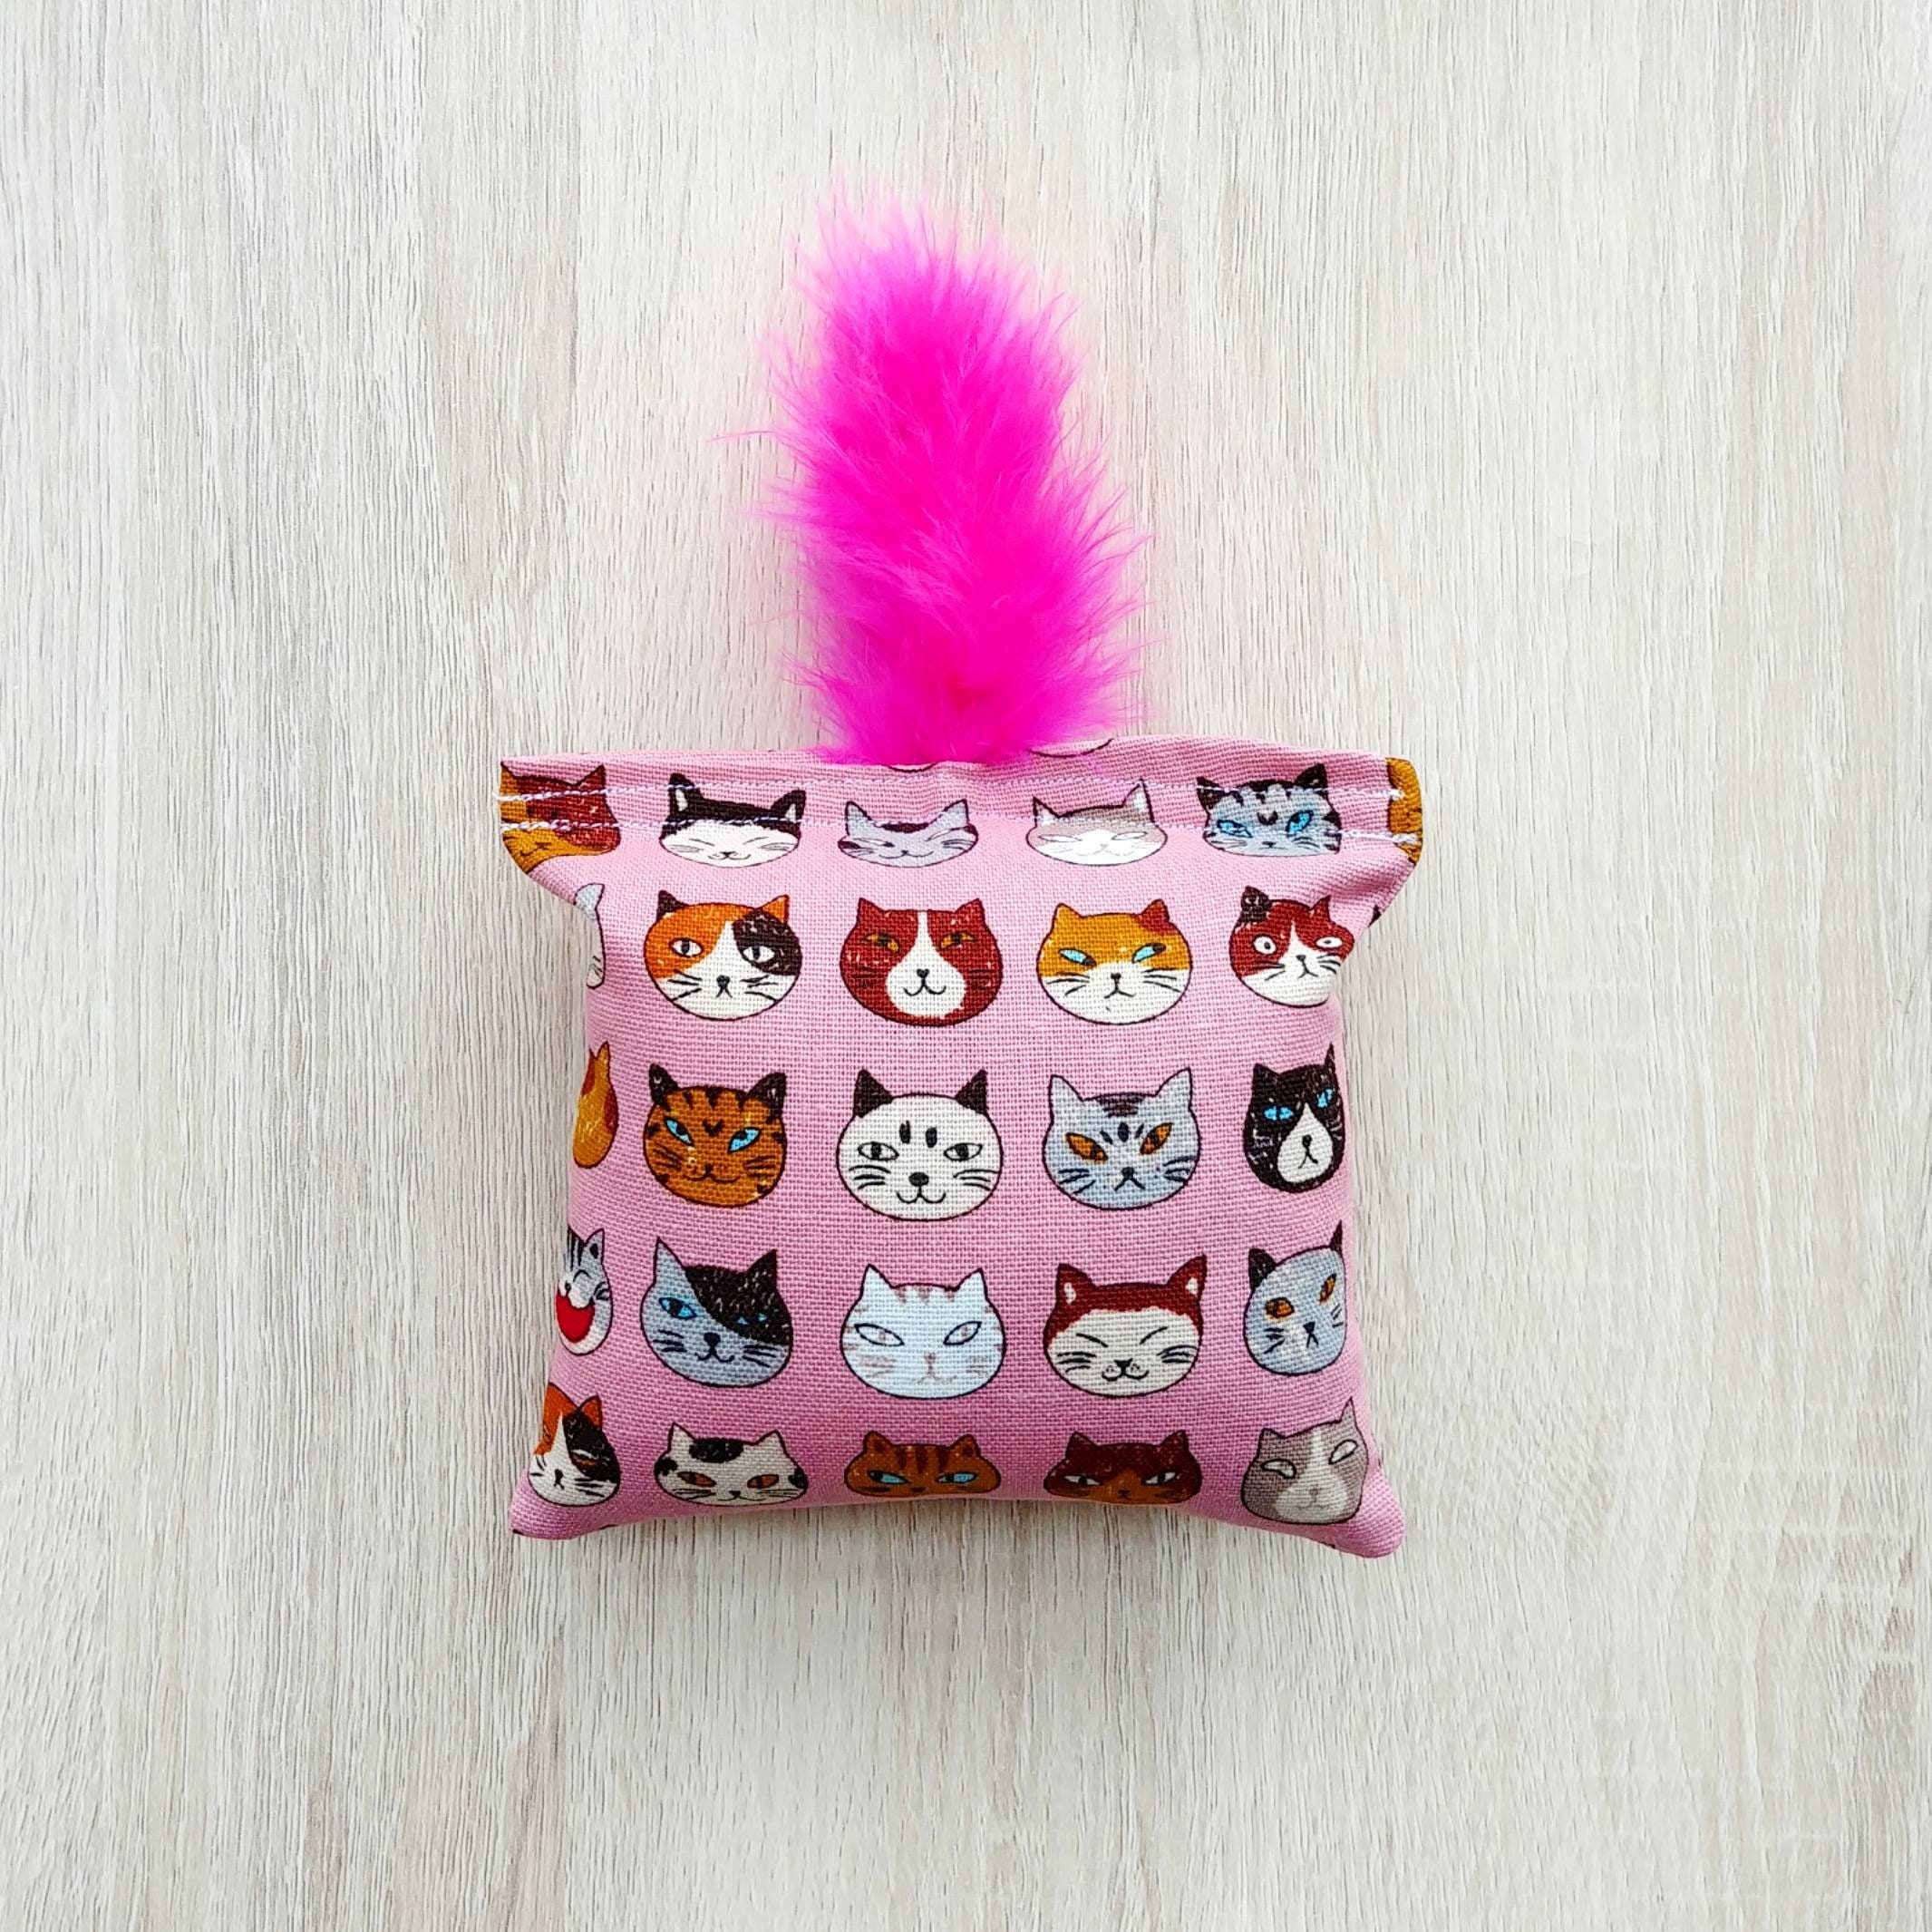 Pink Cats Catnip Pillow Cat Toy With Feathers Pink Catnip